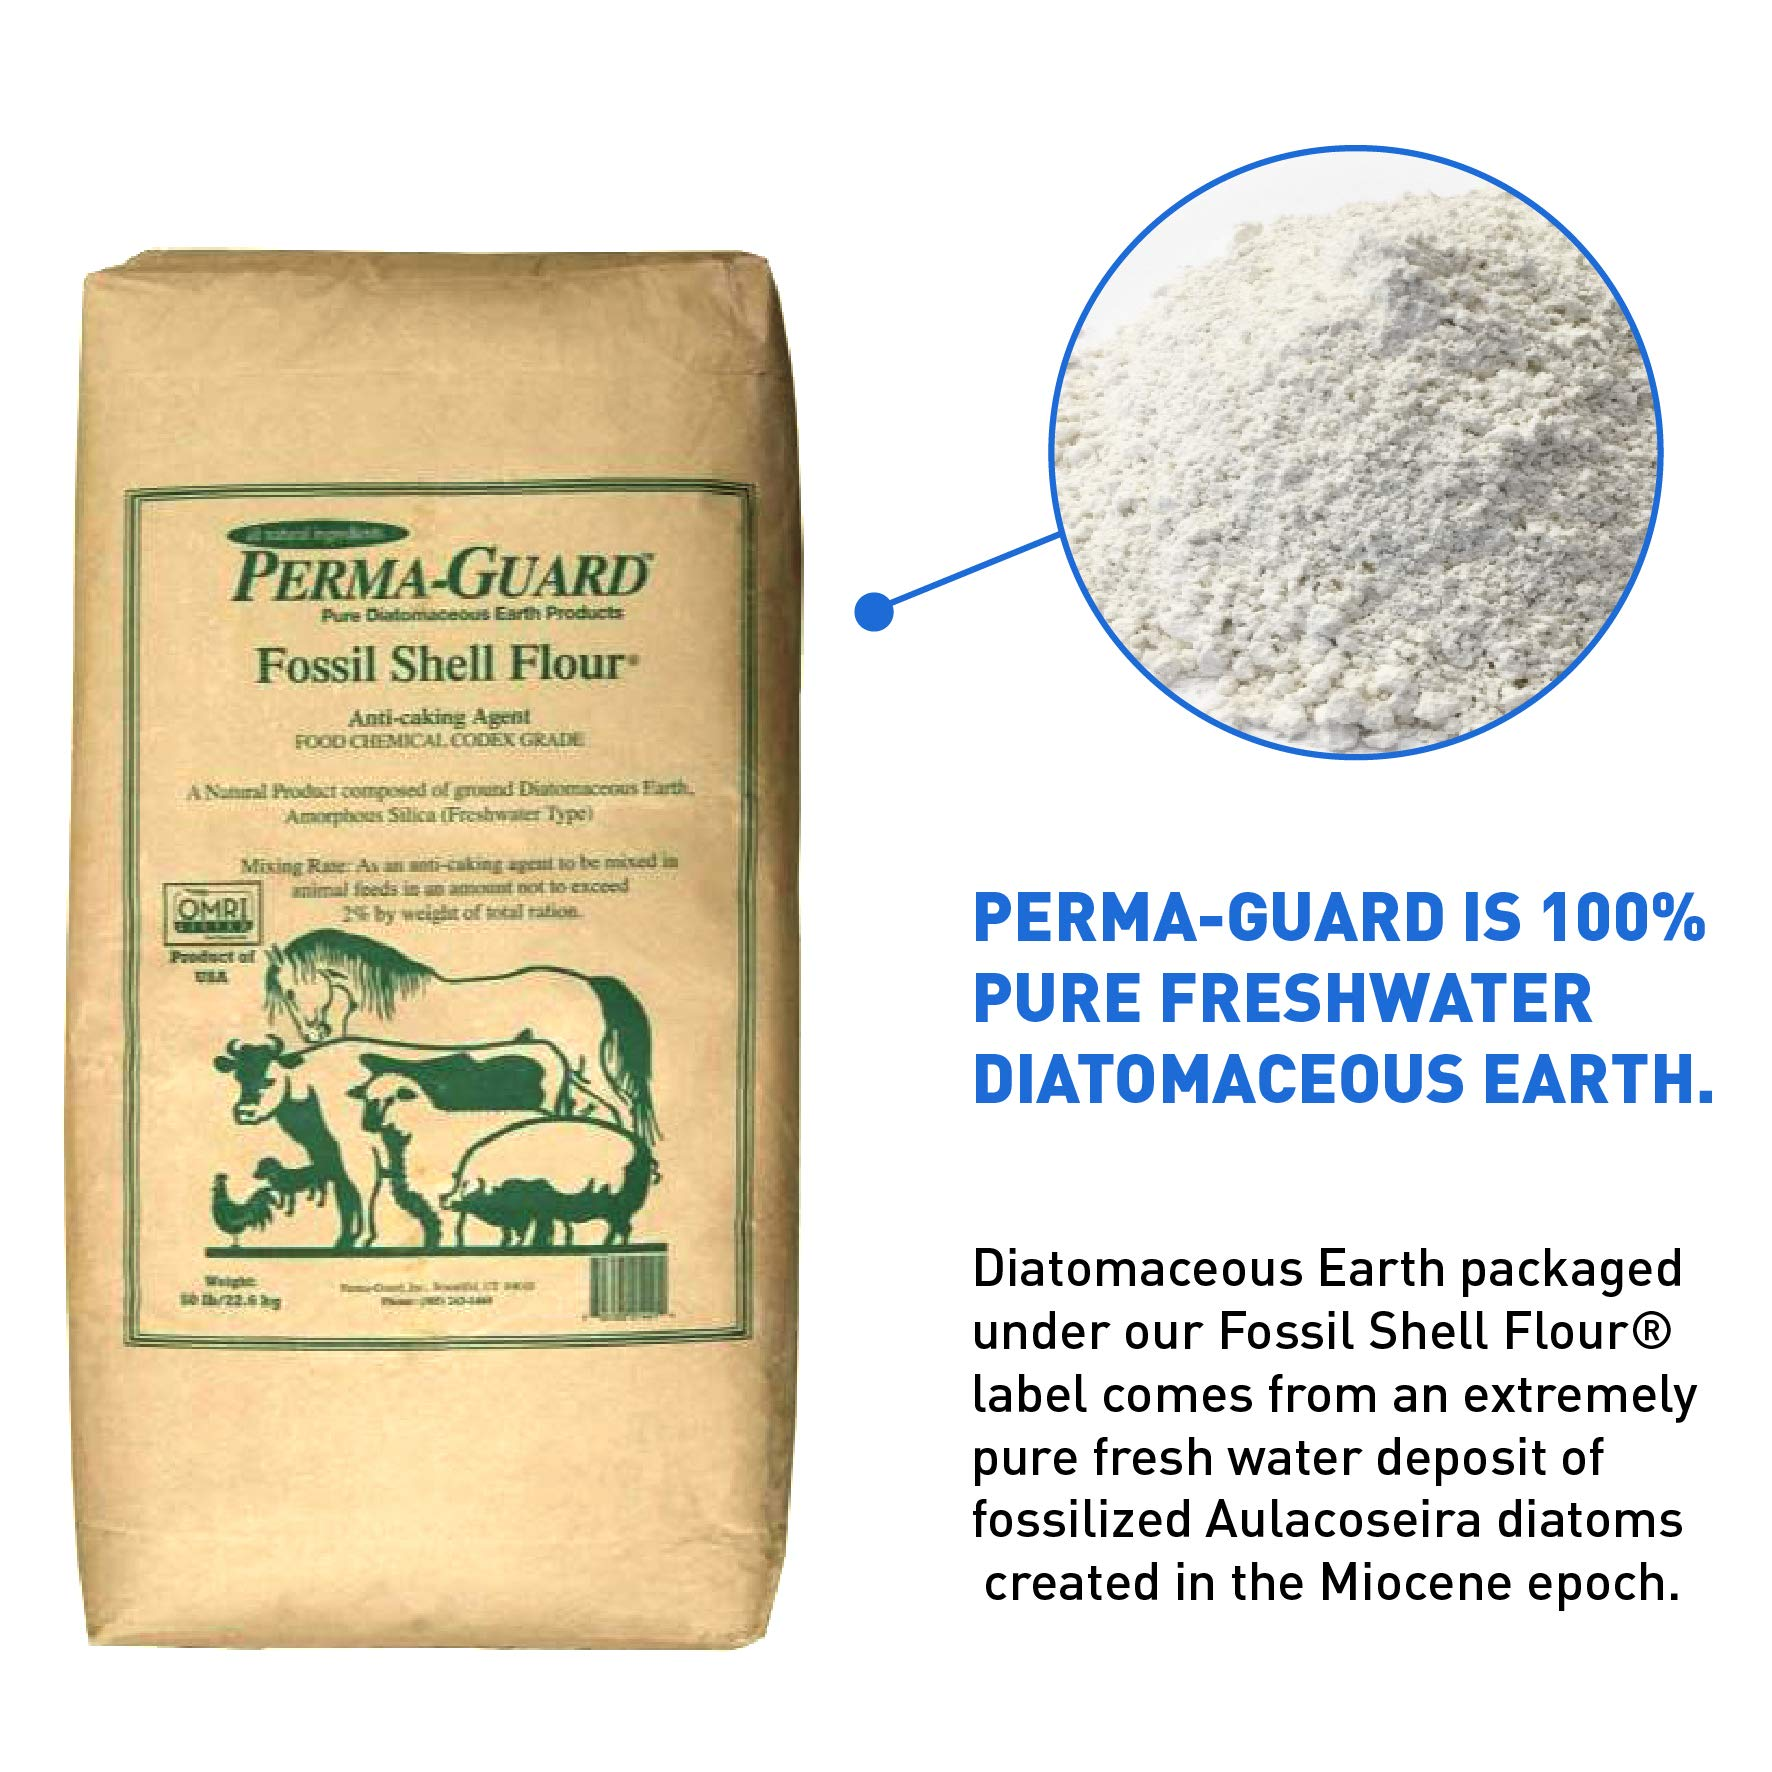 Perma Guard EGP-DE-50C erma Guard Diatomaceous Earth-DE Food Grade, 50 lb, White by Perma-Guard (Image #2)